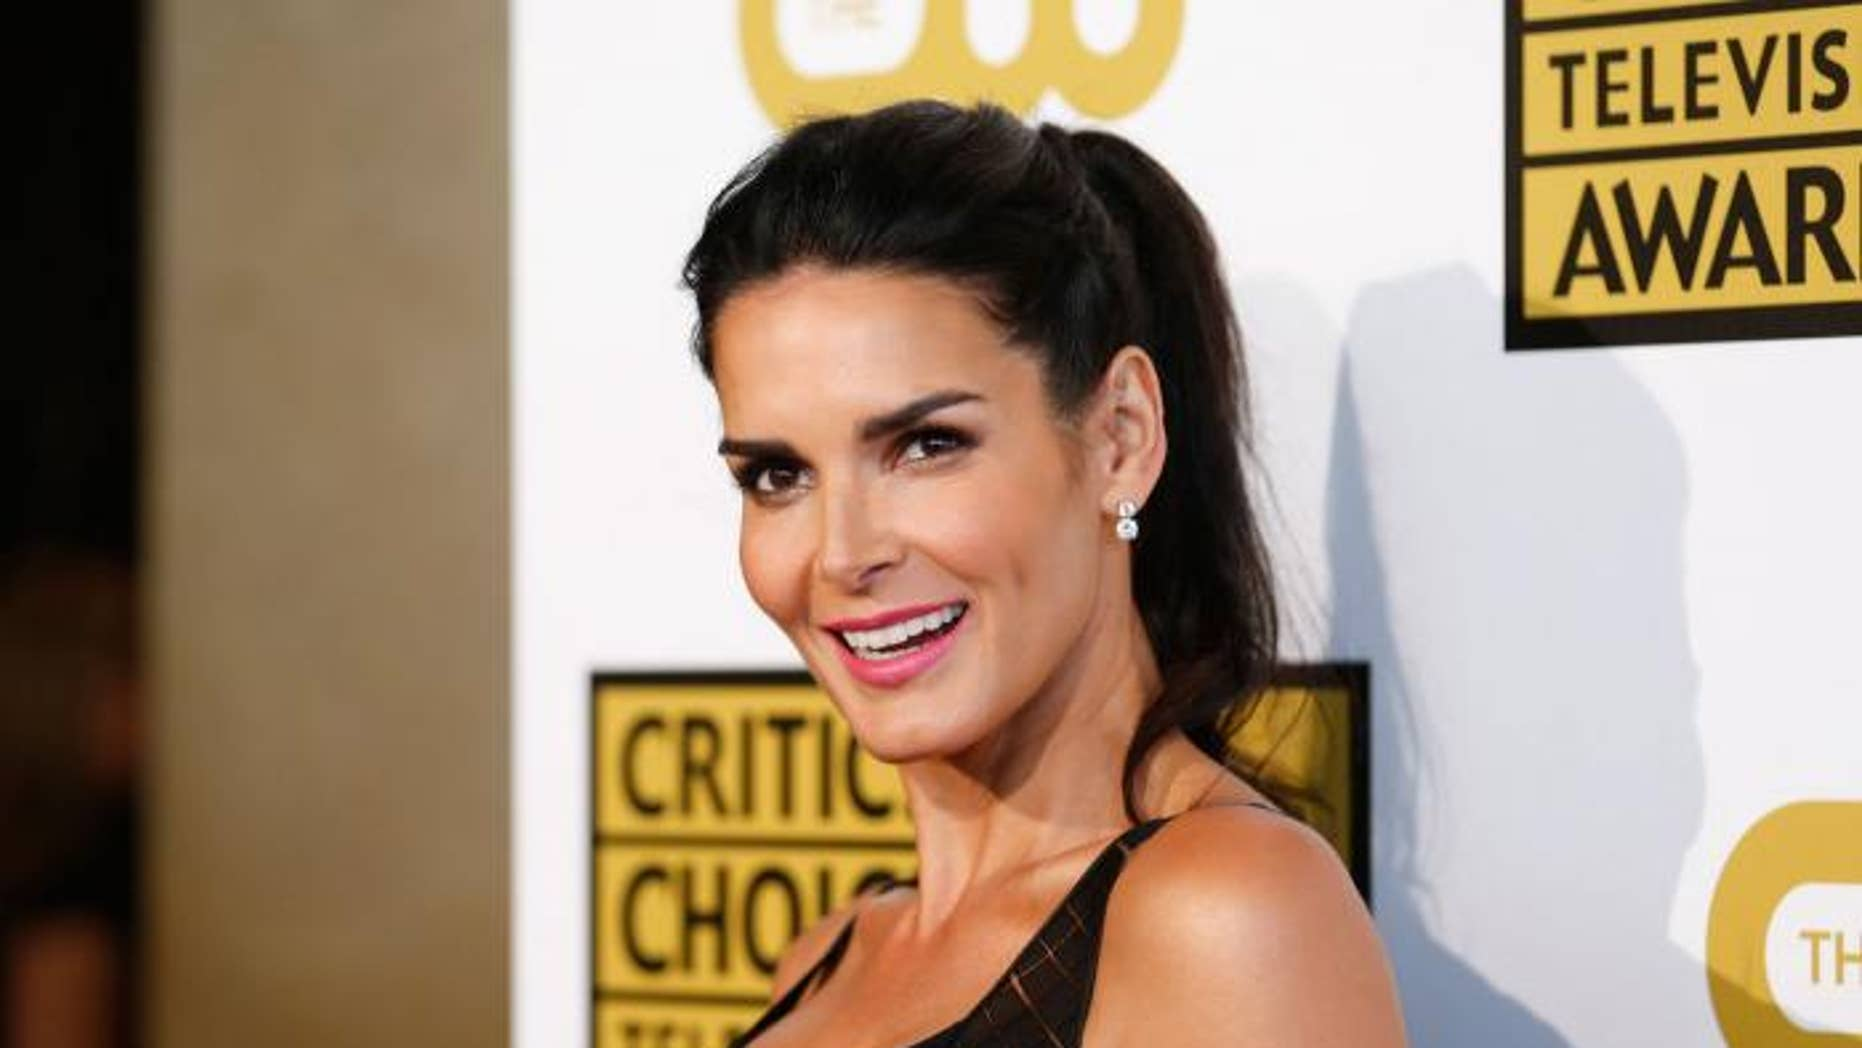 Angie Harmon went on Instagram on Sunday to gush about her new boyfriend Greg Vaughan, complimenting him for recently taking care of her when she didn't feel well.